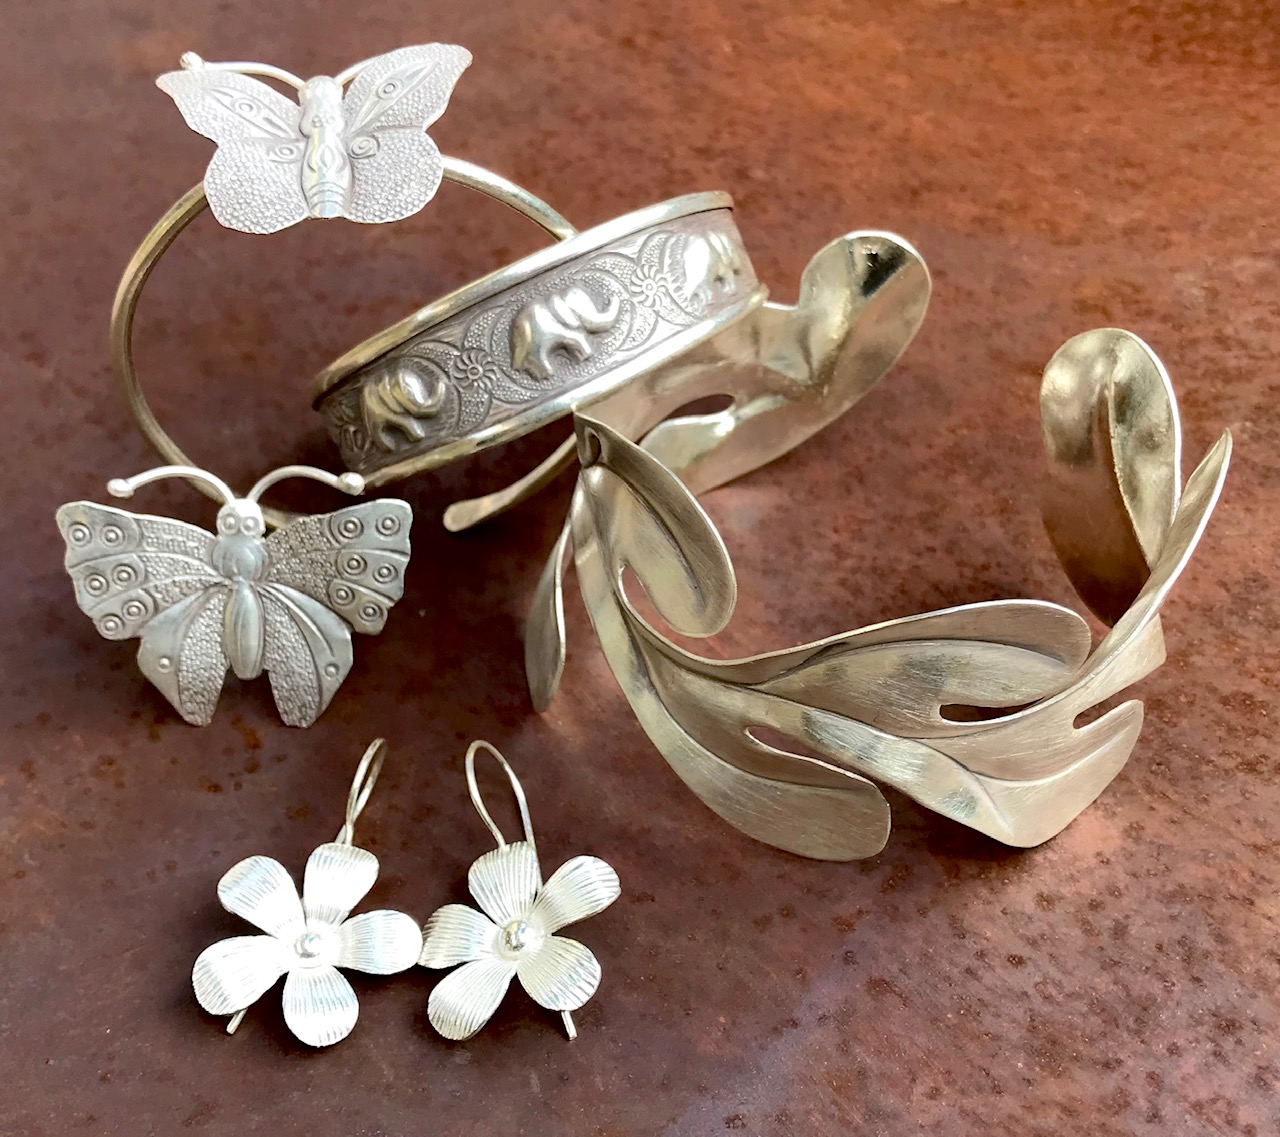 Hill Tribes Silver Jewelry Show: June 5th – 30th